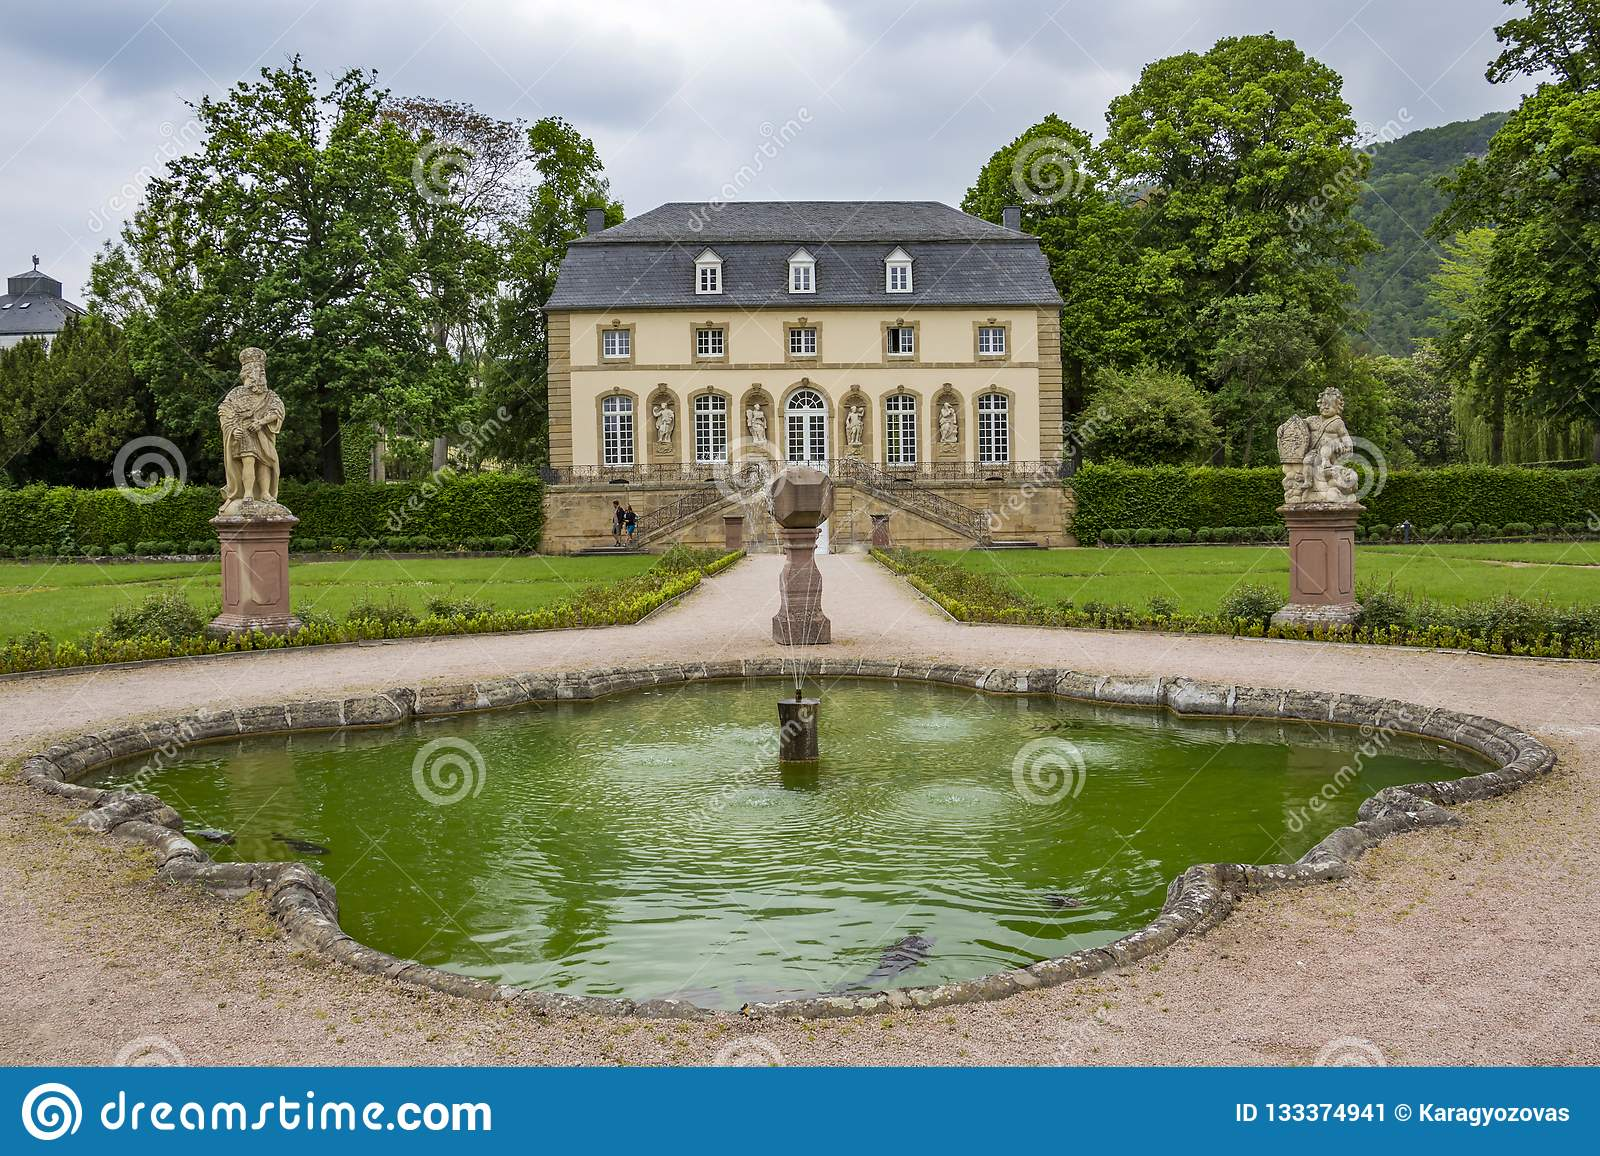 The abbey garden in Echternach, Luxembourg with a fountain and the building of the Orangery on an overcast May day